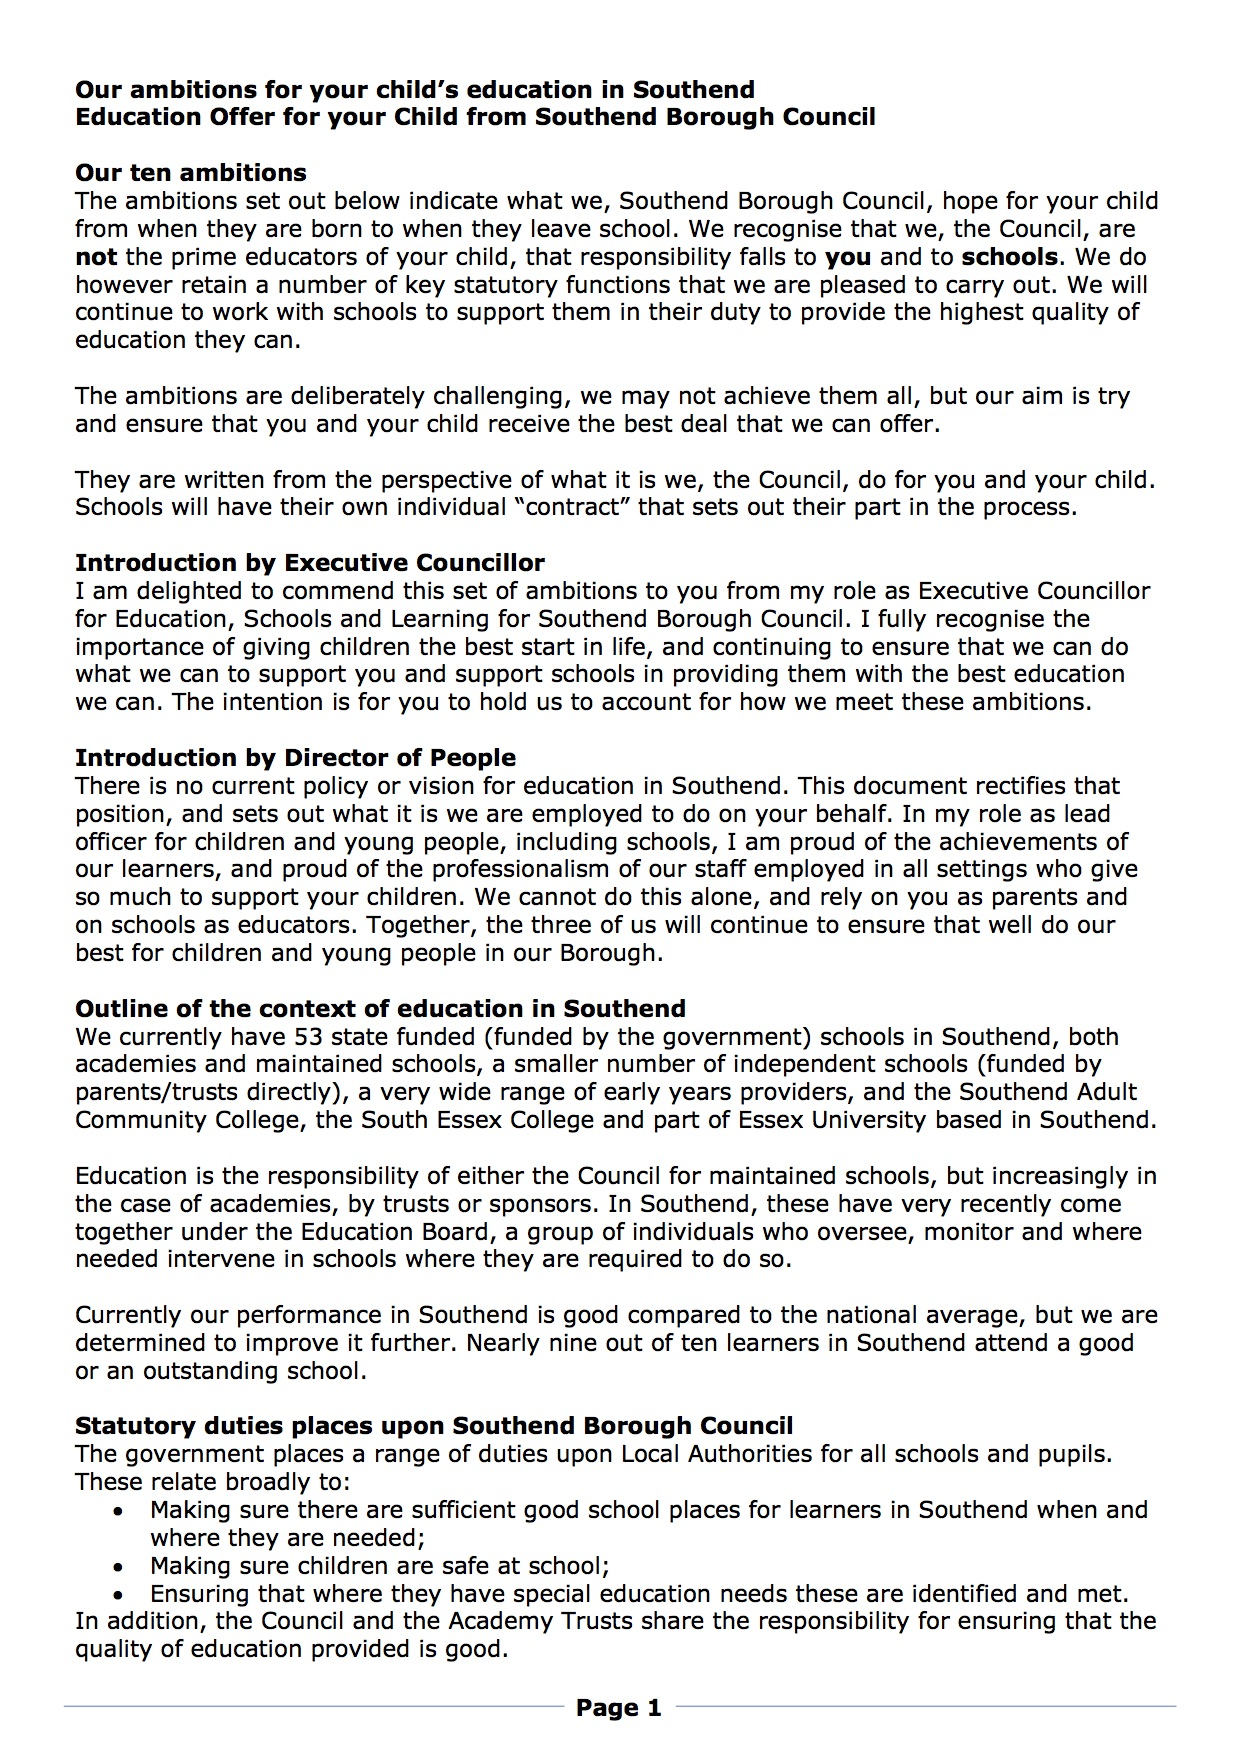 Council sets ambitions in new education blueprint leigh on sea if approved by cabinet the document will be launched as the official education policy of the council malvernweather Image collections